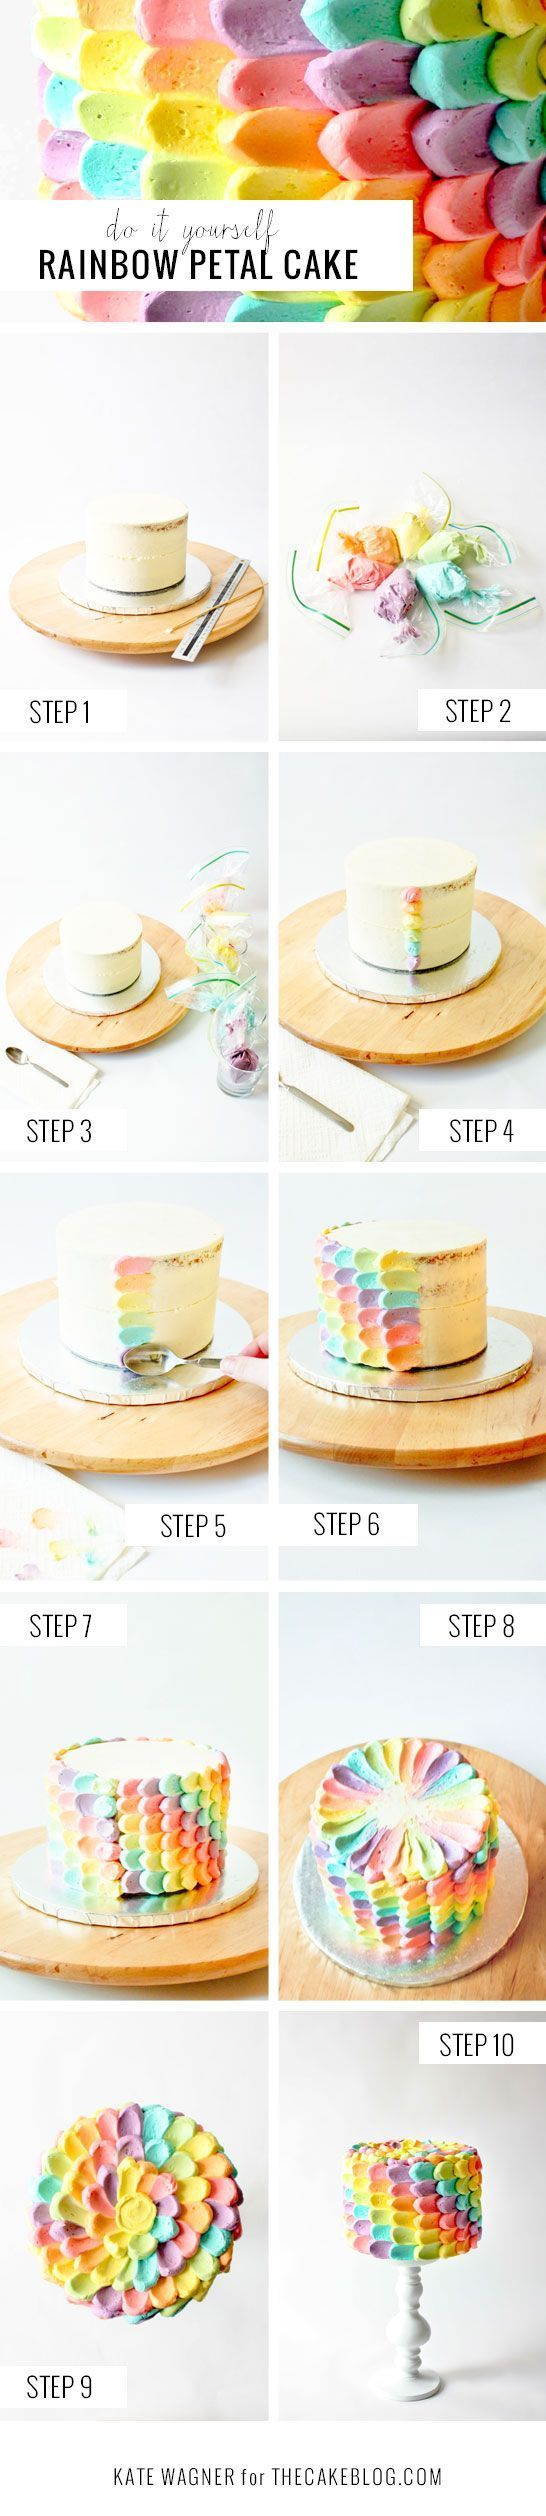 Rainbow petal cake. How to... So beautiful! I need to make a cake now to try this...a very merry un birthday to me.